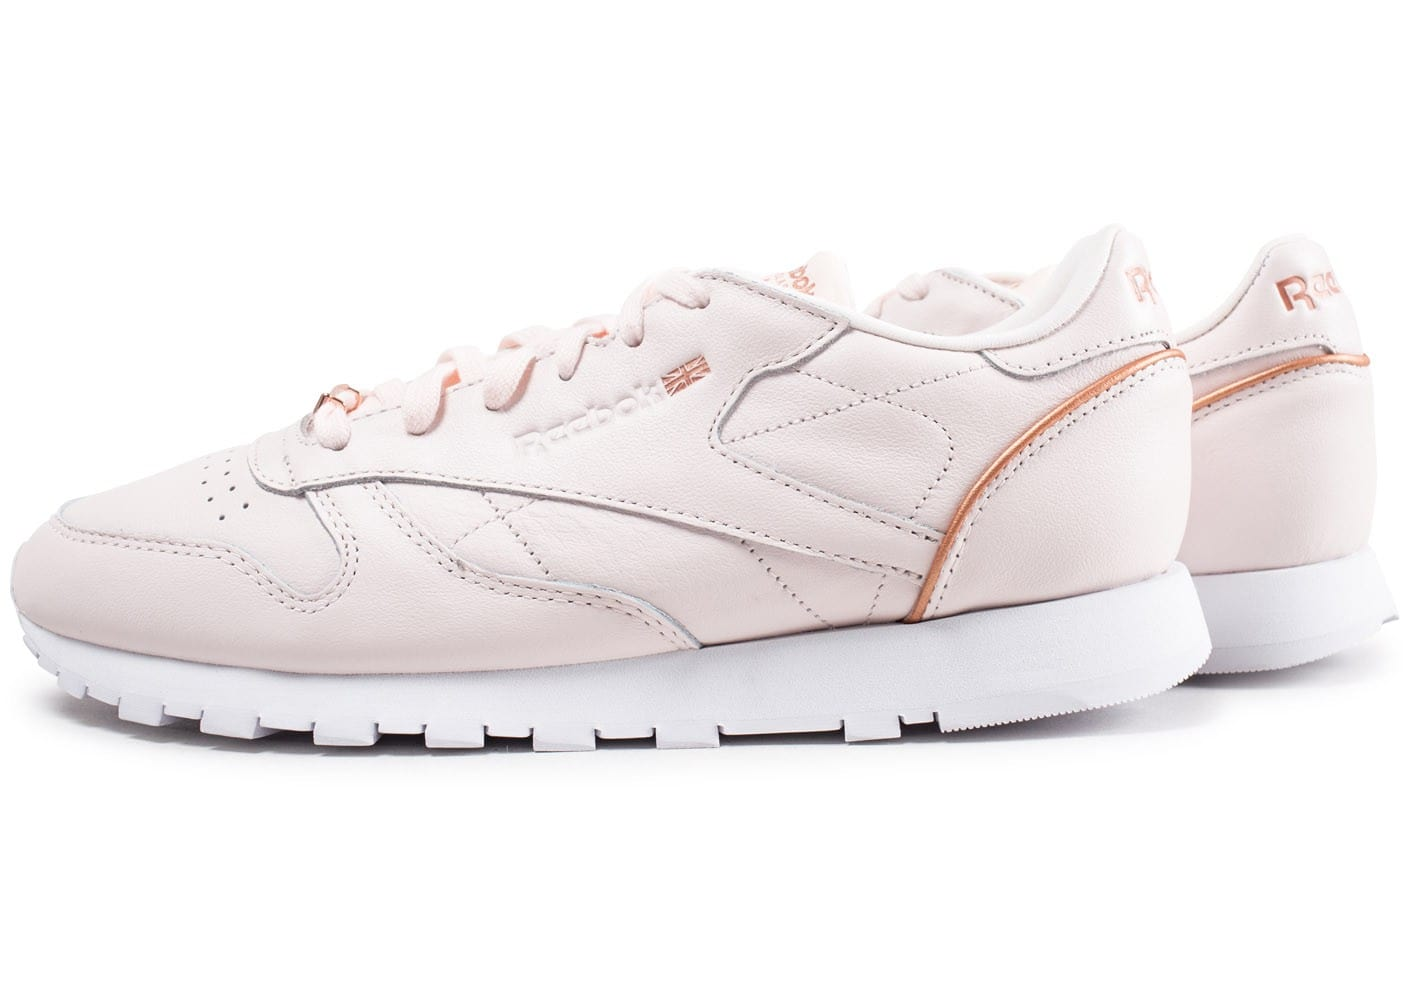 Leather Classic Reebok Rose Chaussures Femme Hw Chausport Baskets T1cKul3FJ